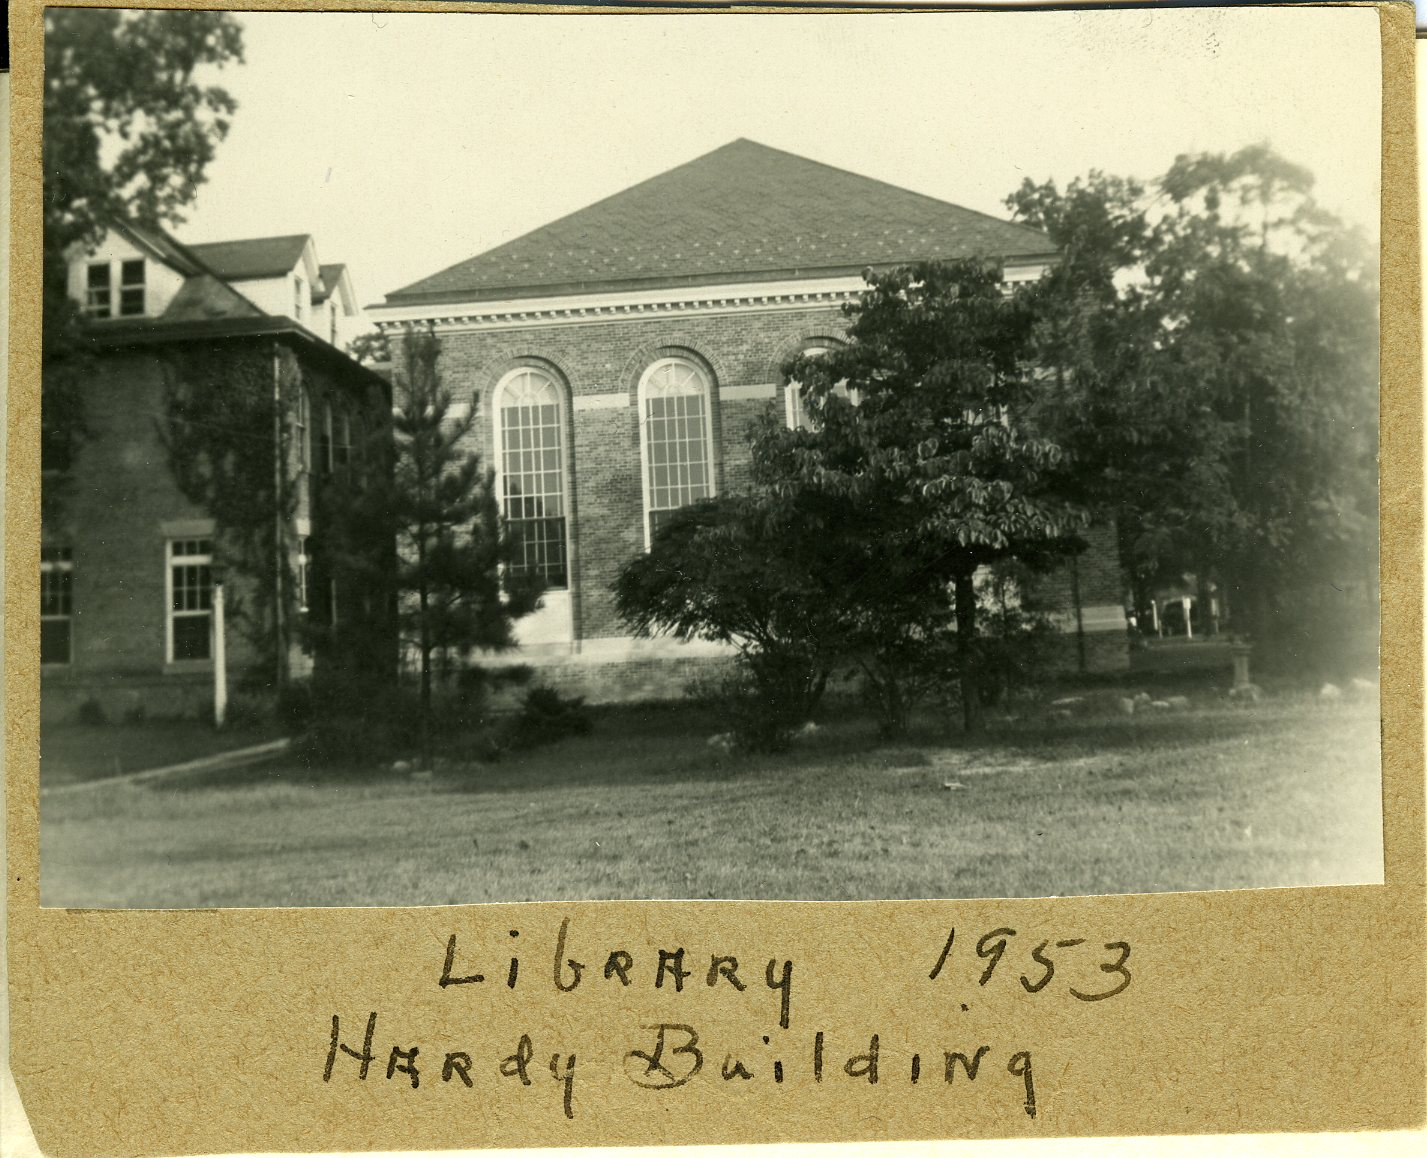 Hardy Building